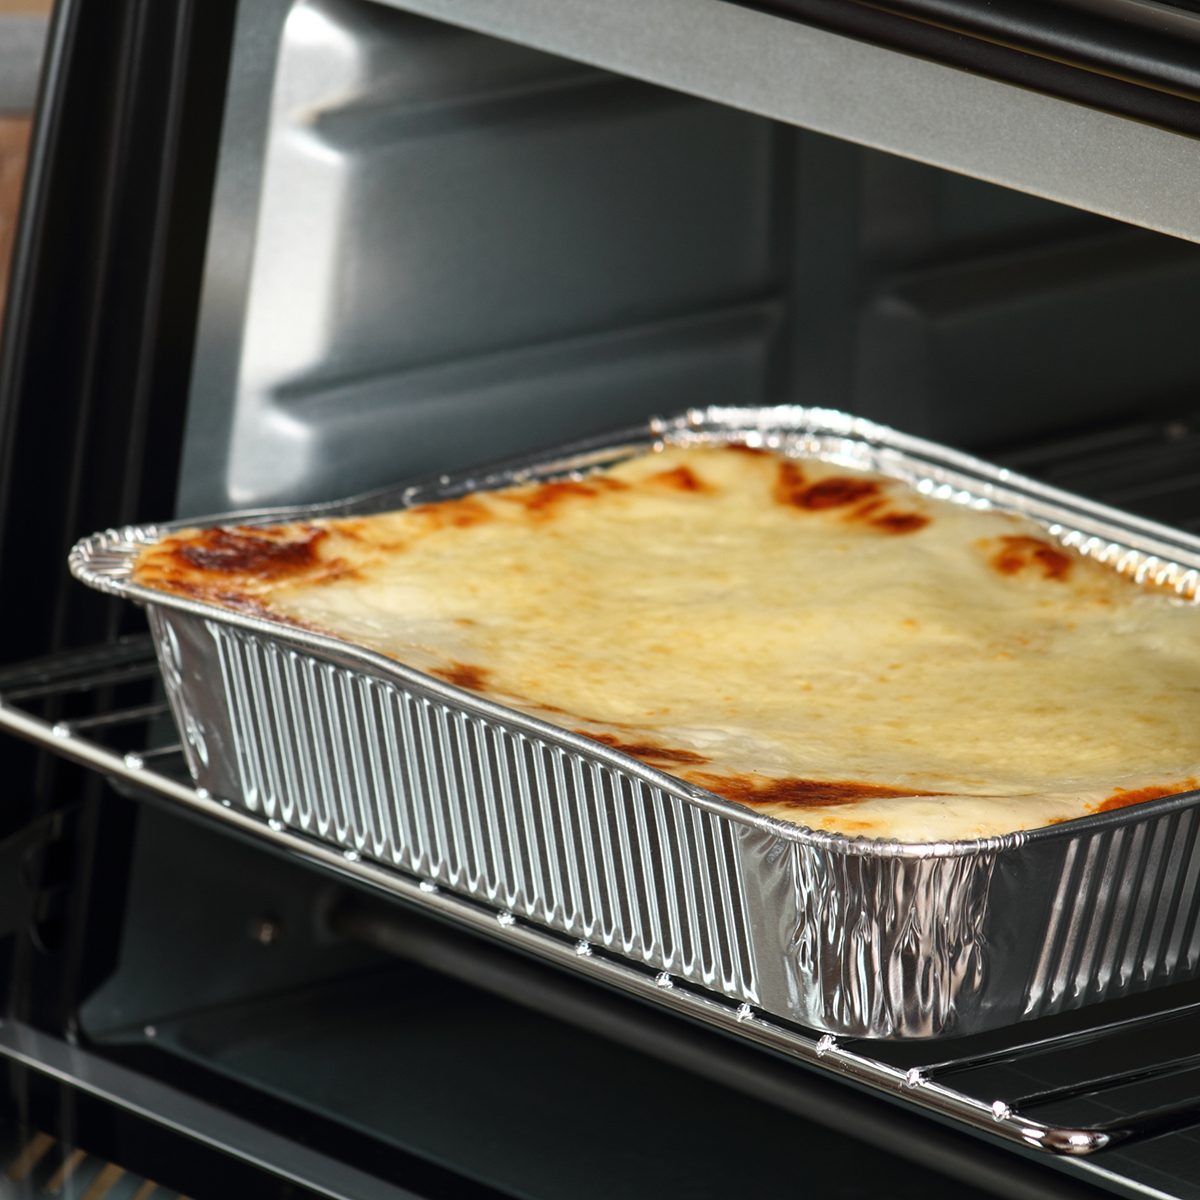 Baking Lasagne Bolognese in Disposable Foil Dish in Electric Oven